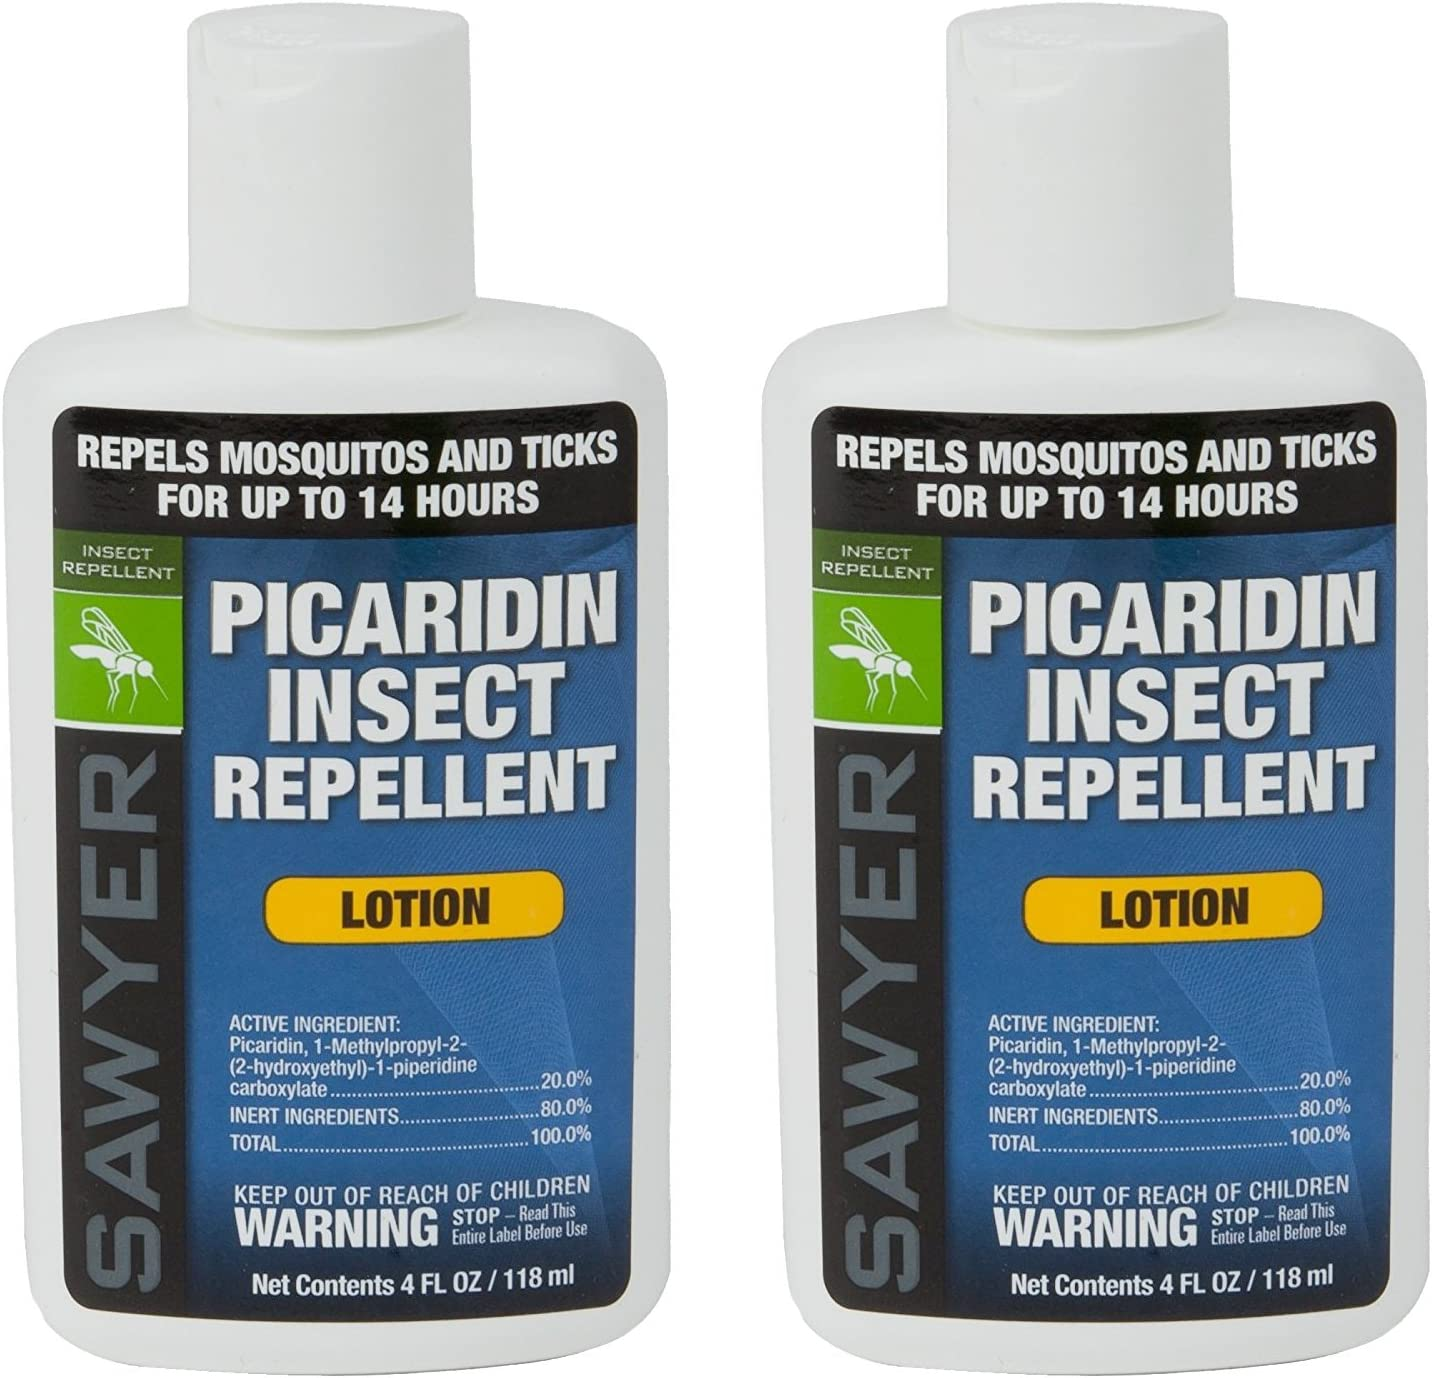 Sawyer Products Picaridin Insect Repellent